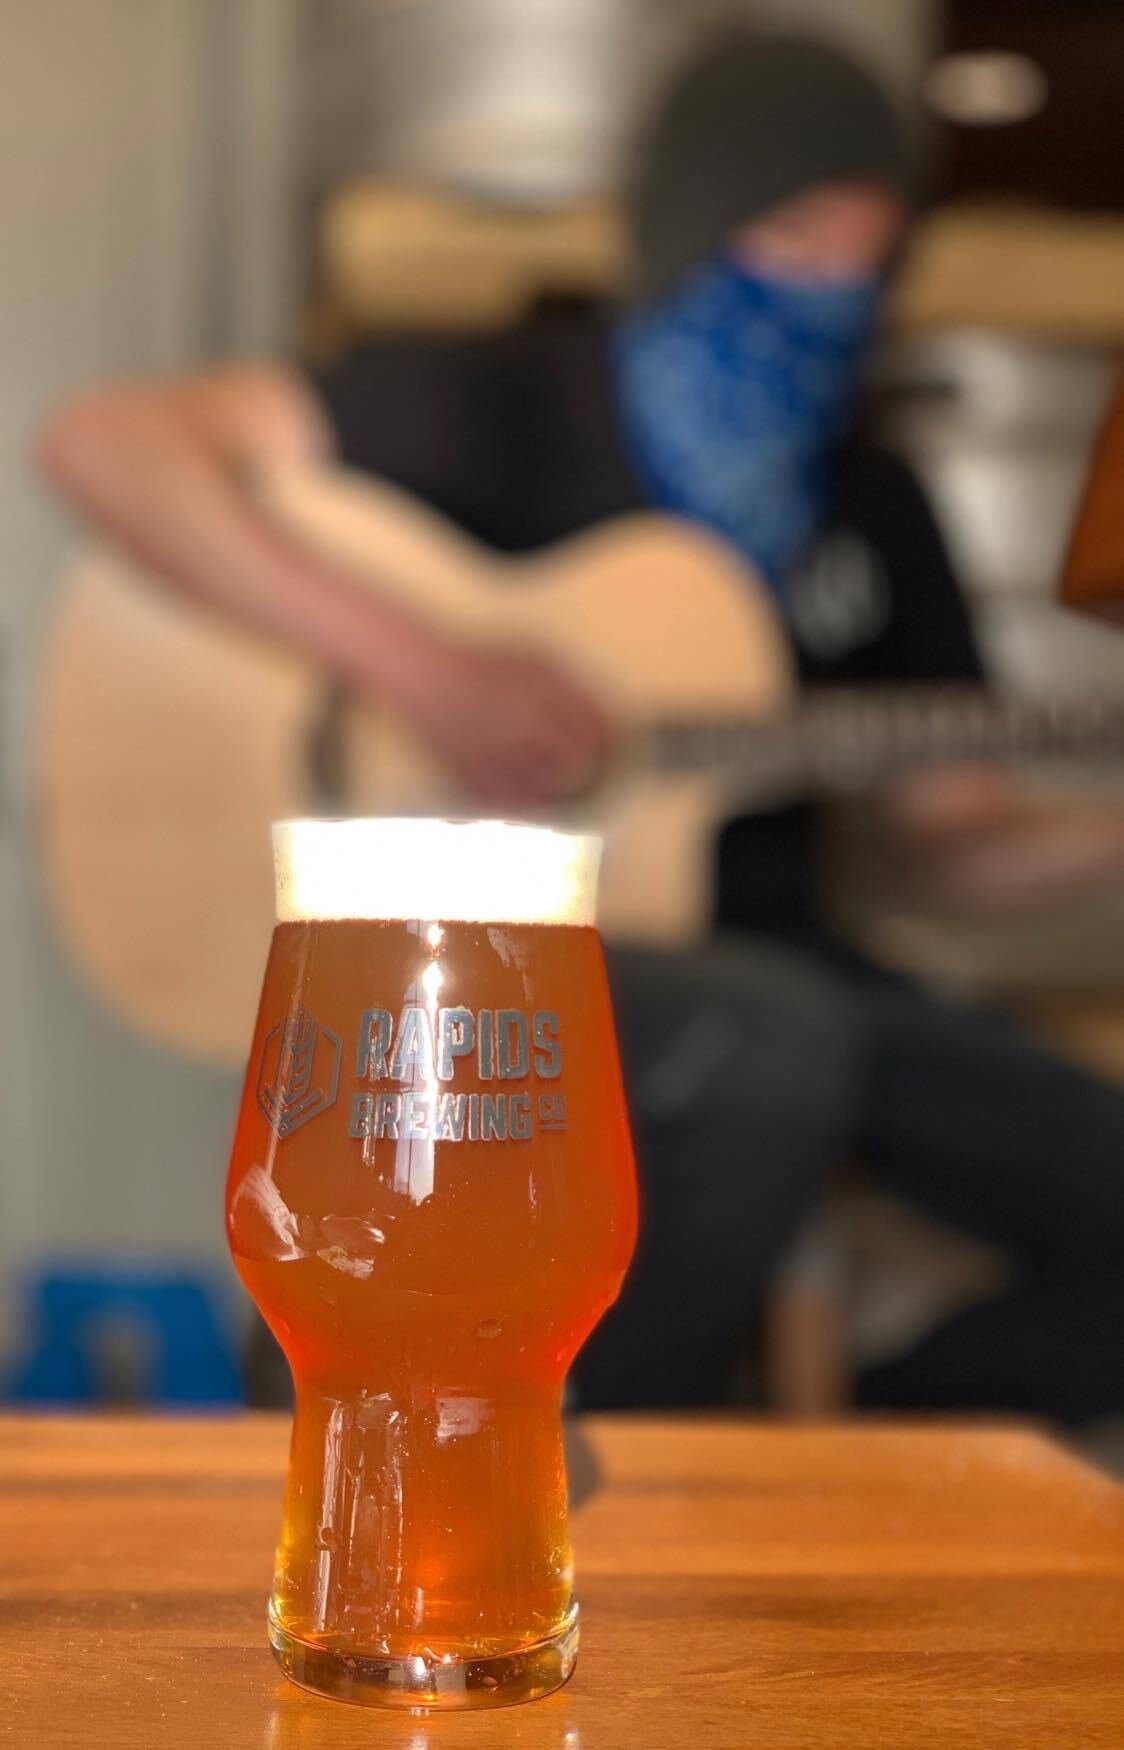 Jam on Double Time Beer in glass